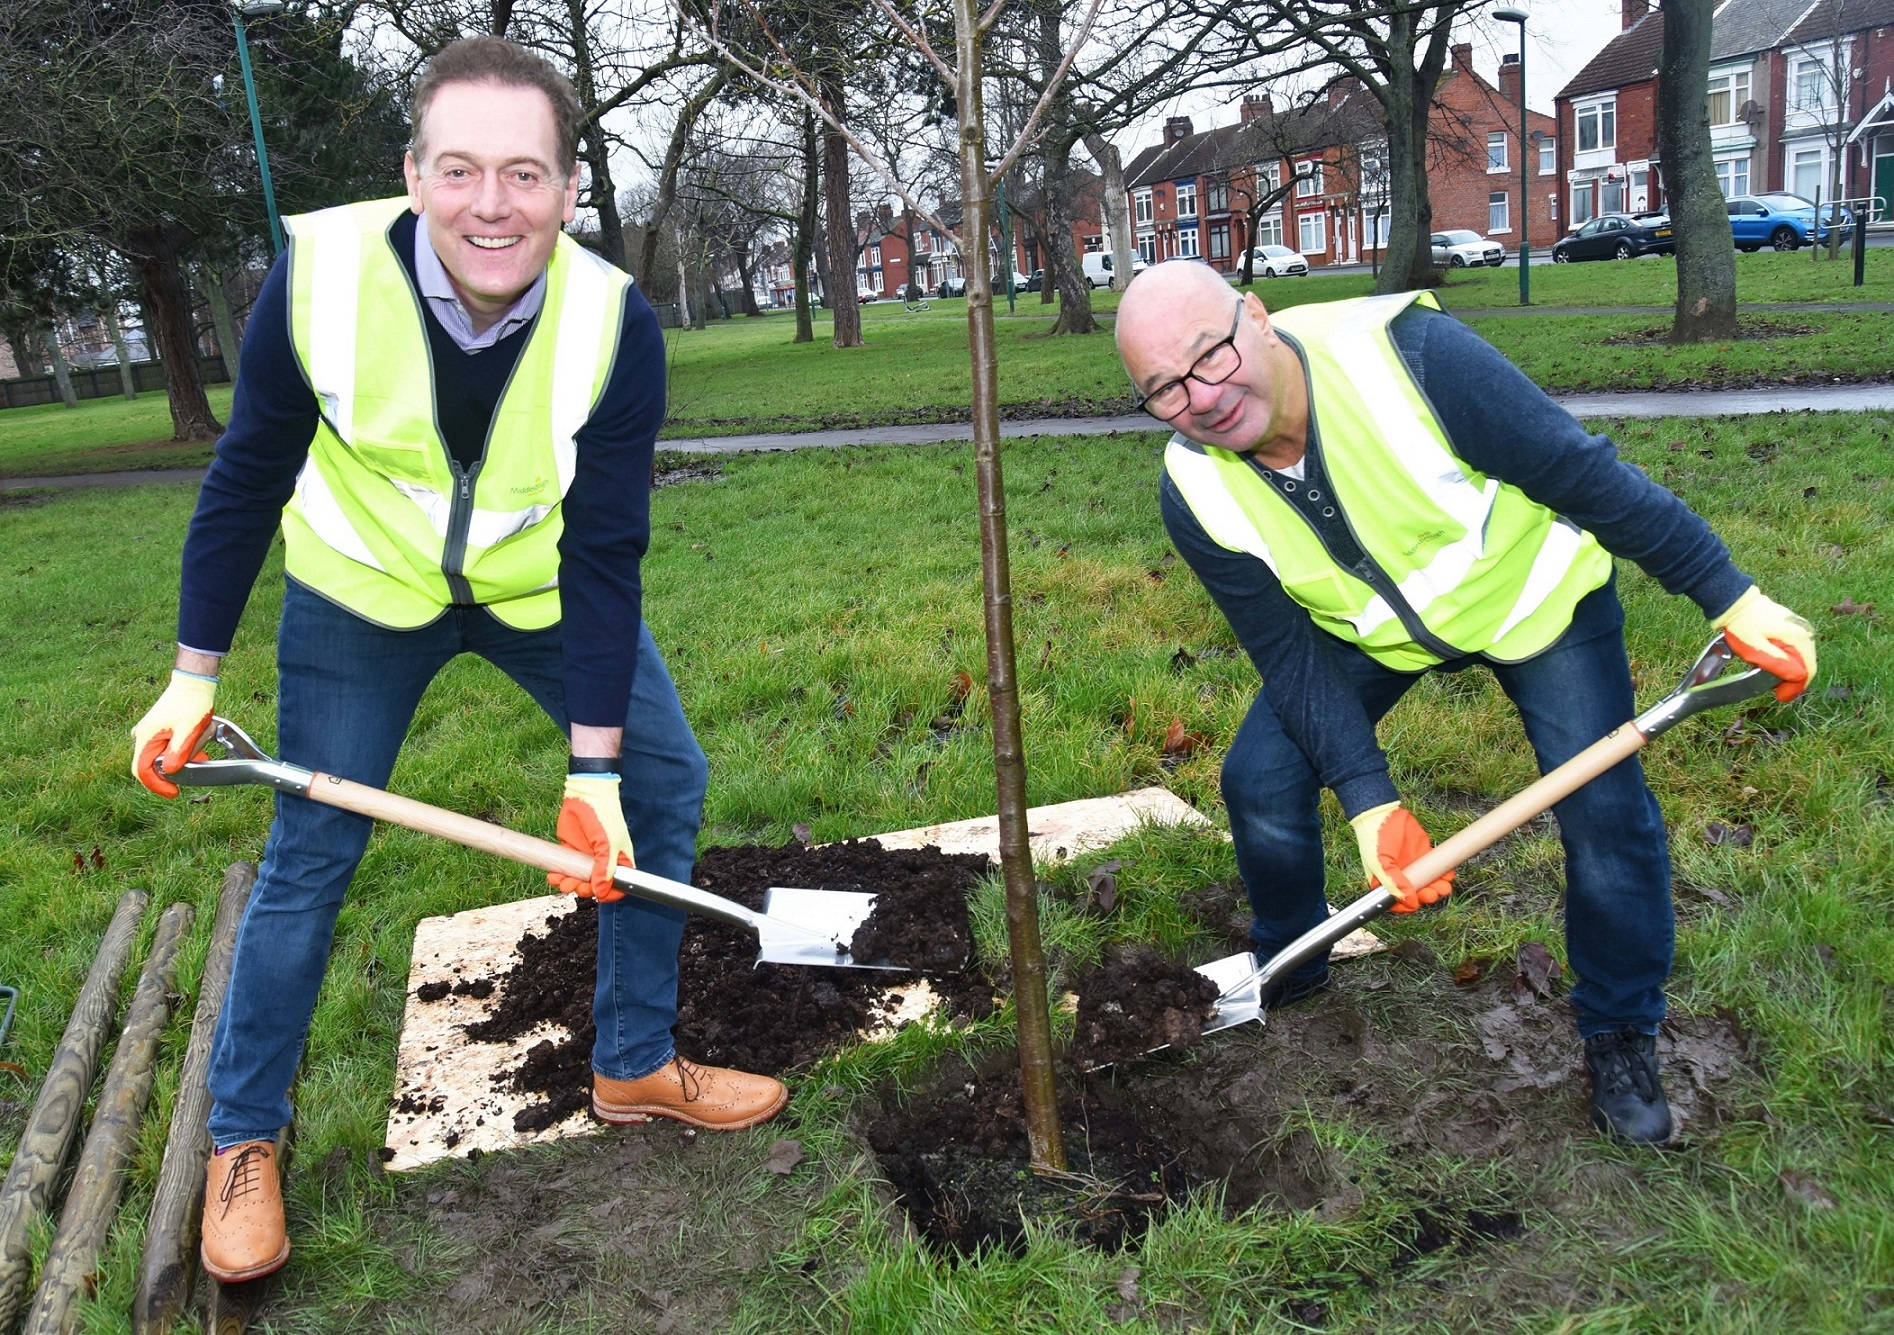 Middlesbrough Mayor Andy Preston and Cllr Dennis McCabe, Executive member for Environment, planting trees at Ayresome Gardens